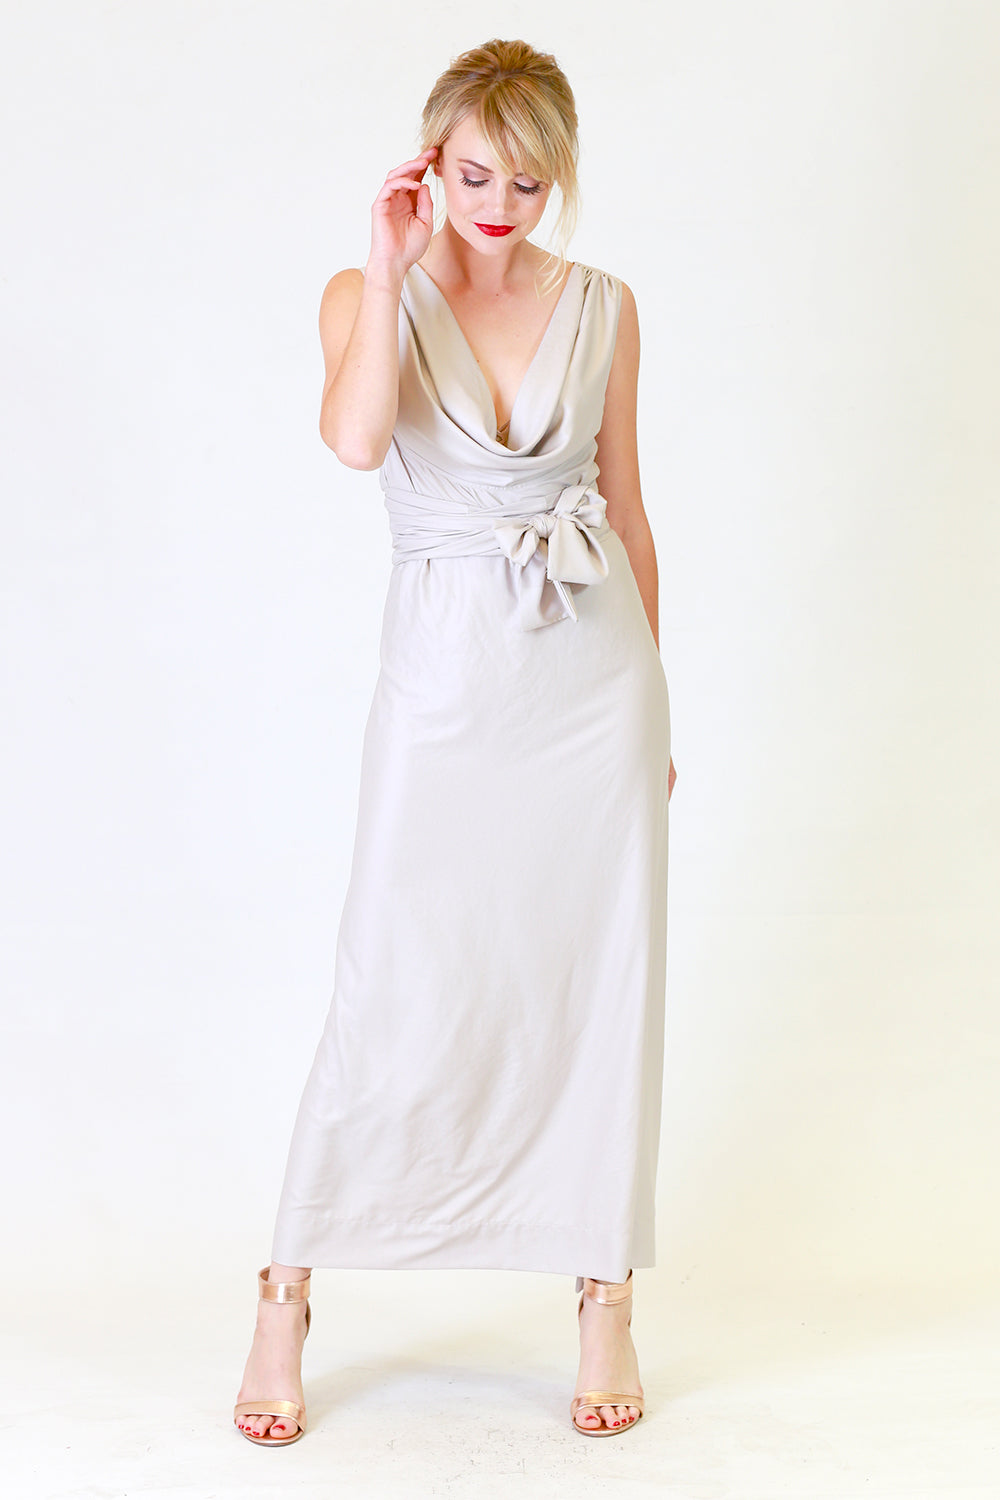 Myra Misty Dress